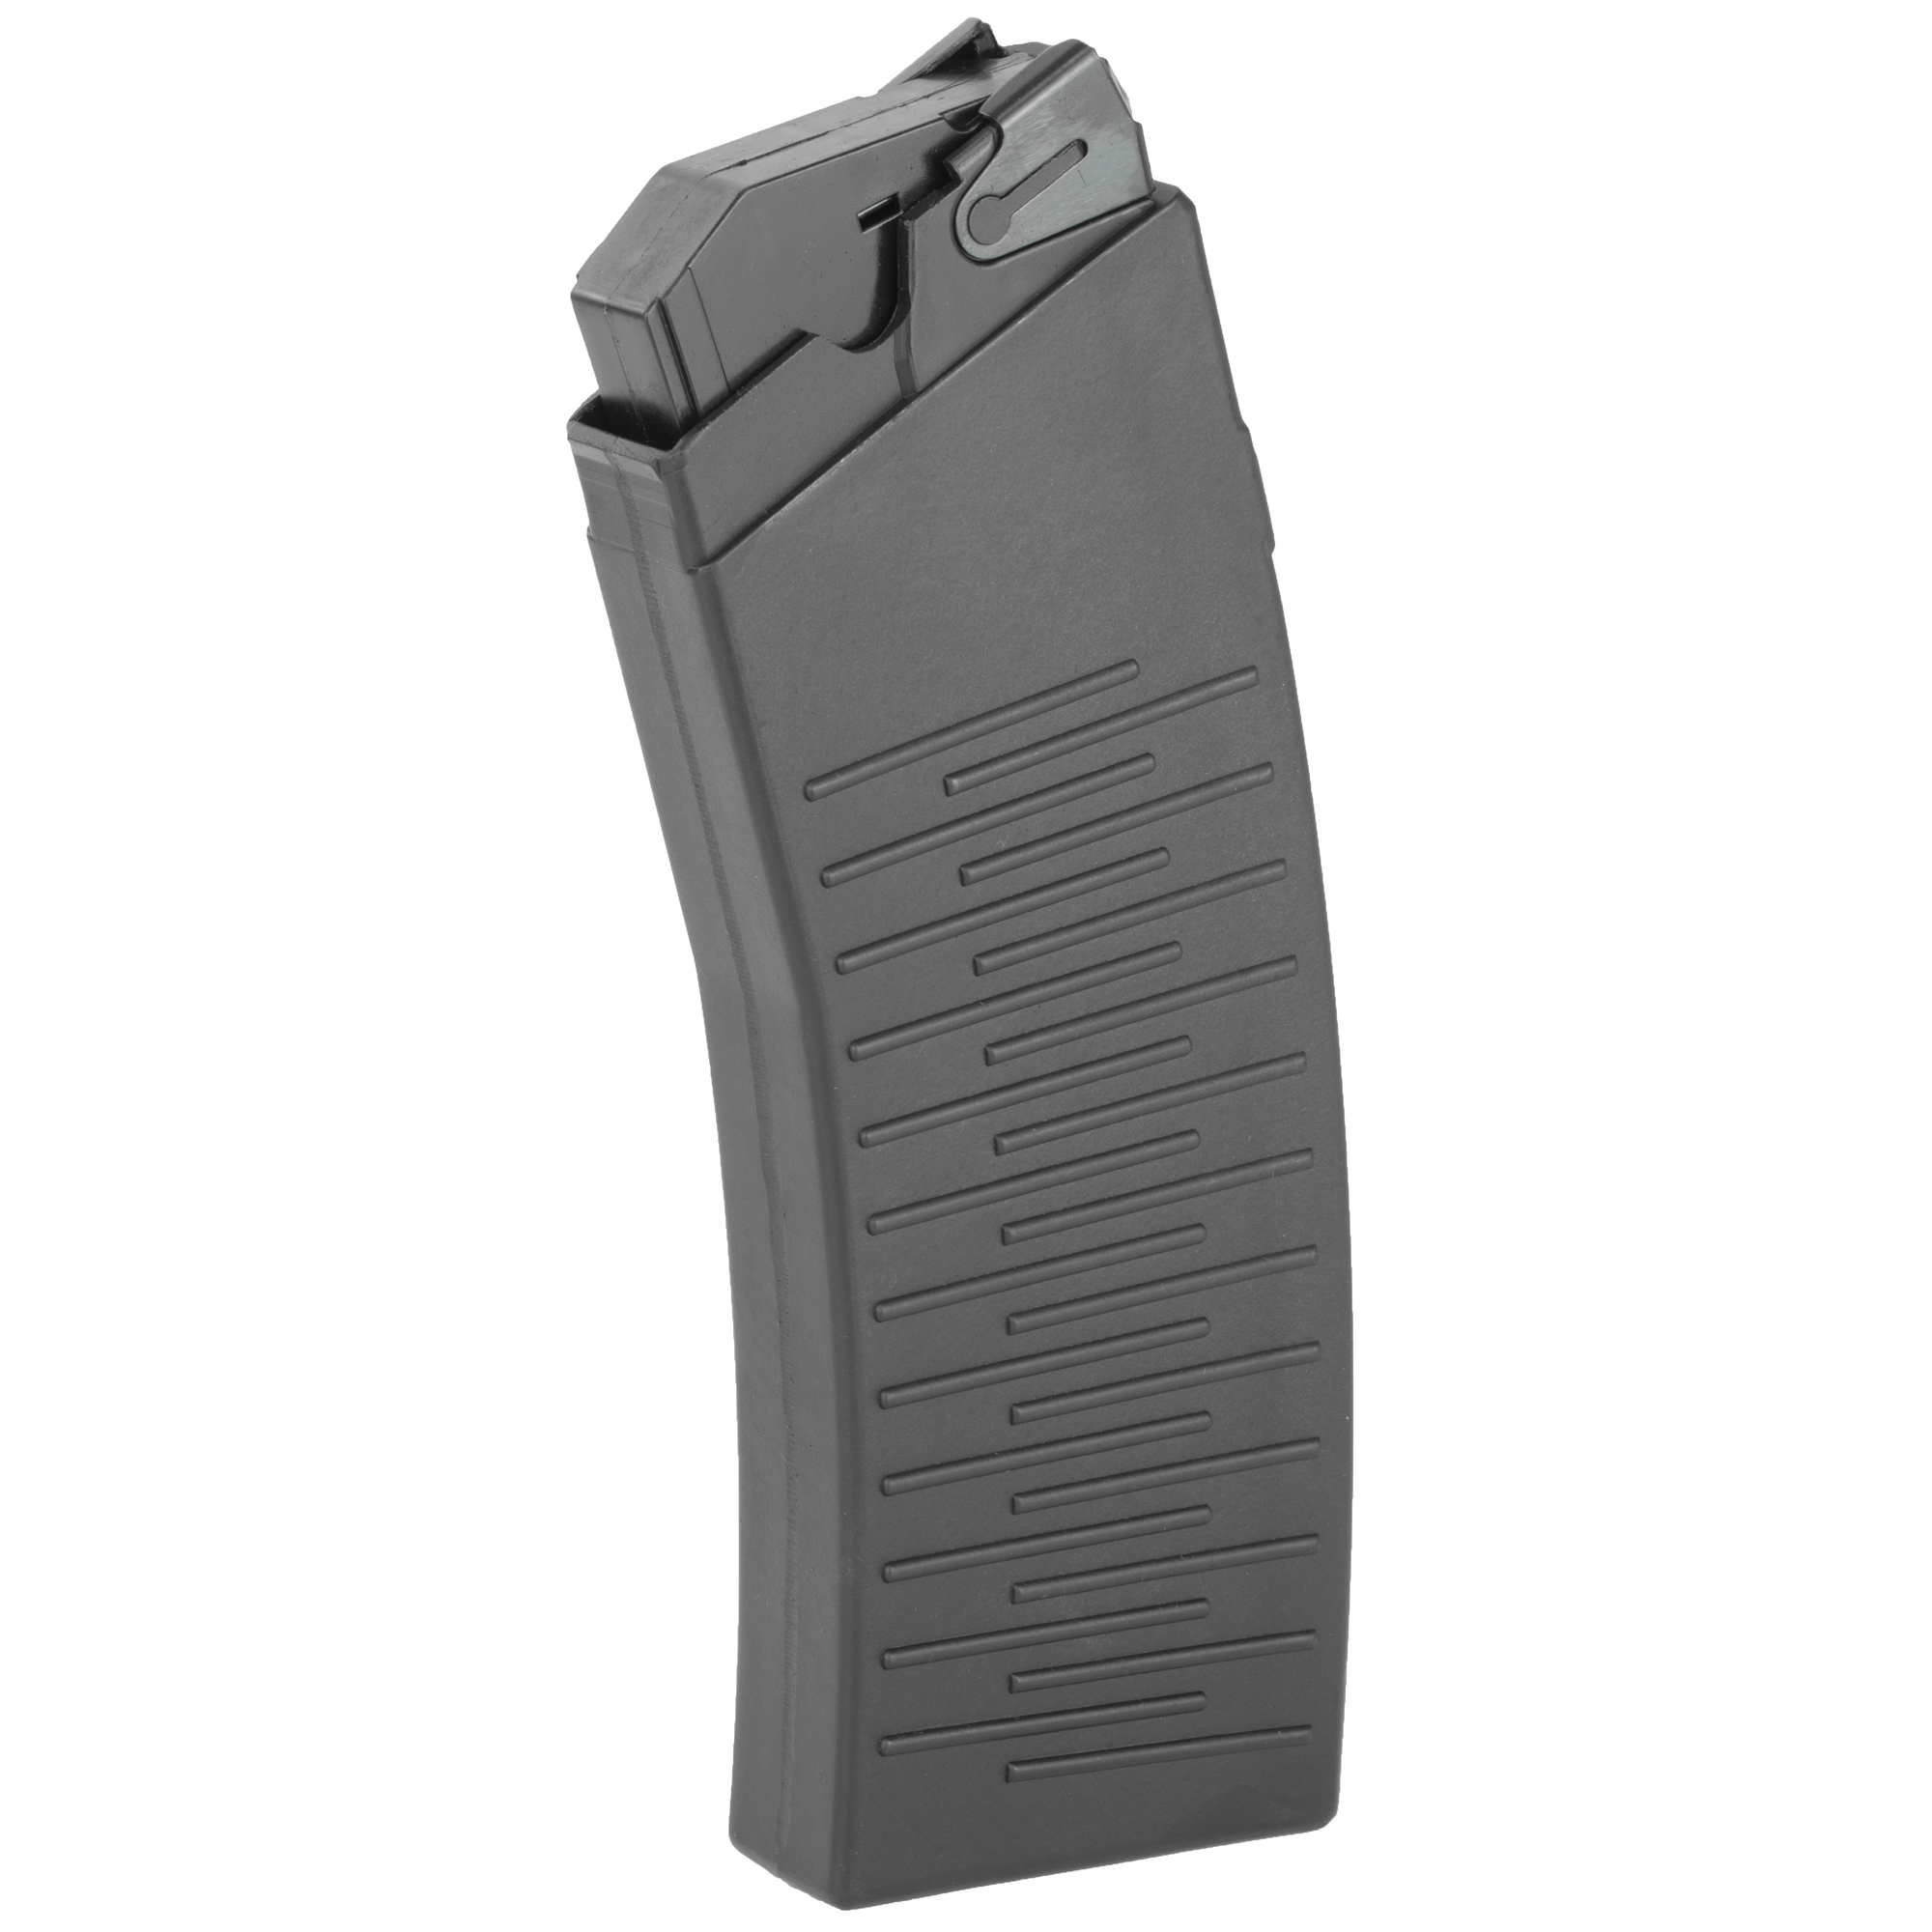 This Fime VEPR magazine features weapons grade polymer construction and a high quality spring and follower.